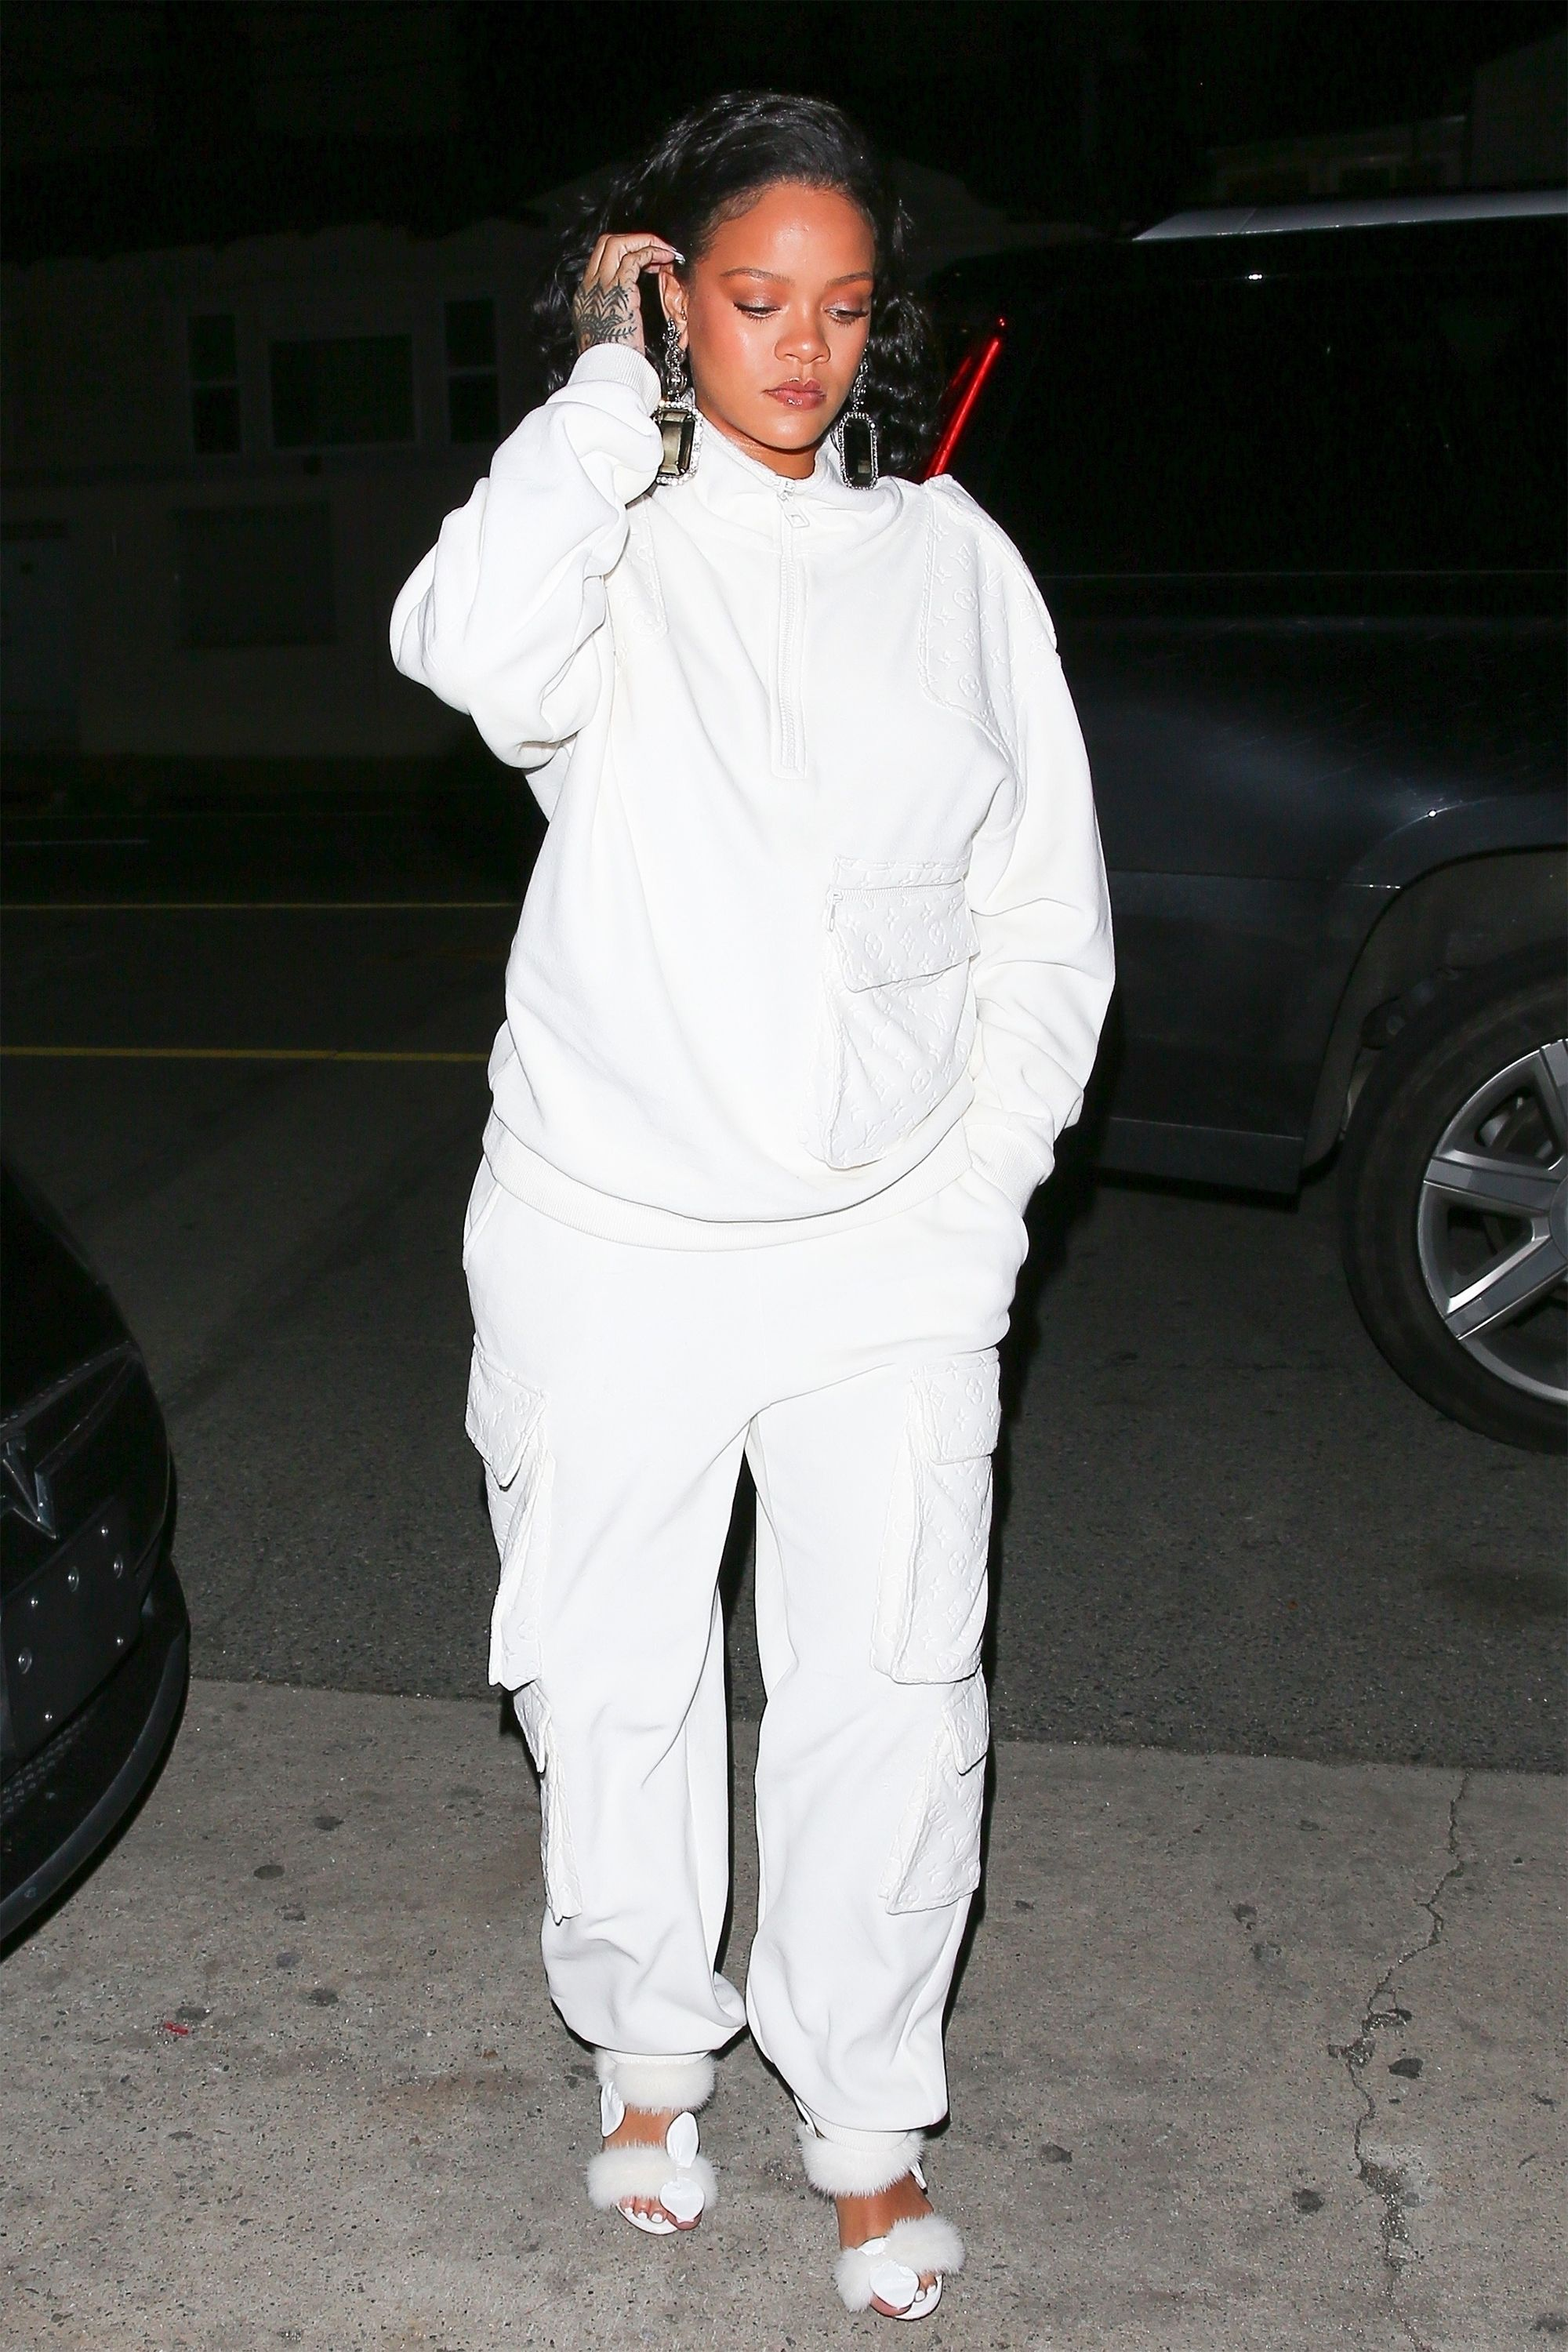 *EXCLUSIVE* Rihanna rocks all white LV as she arrives for dinner at Giorgio Baldi